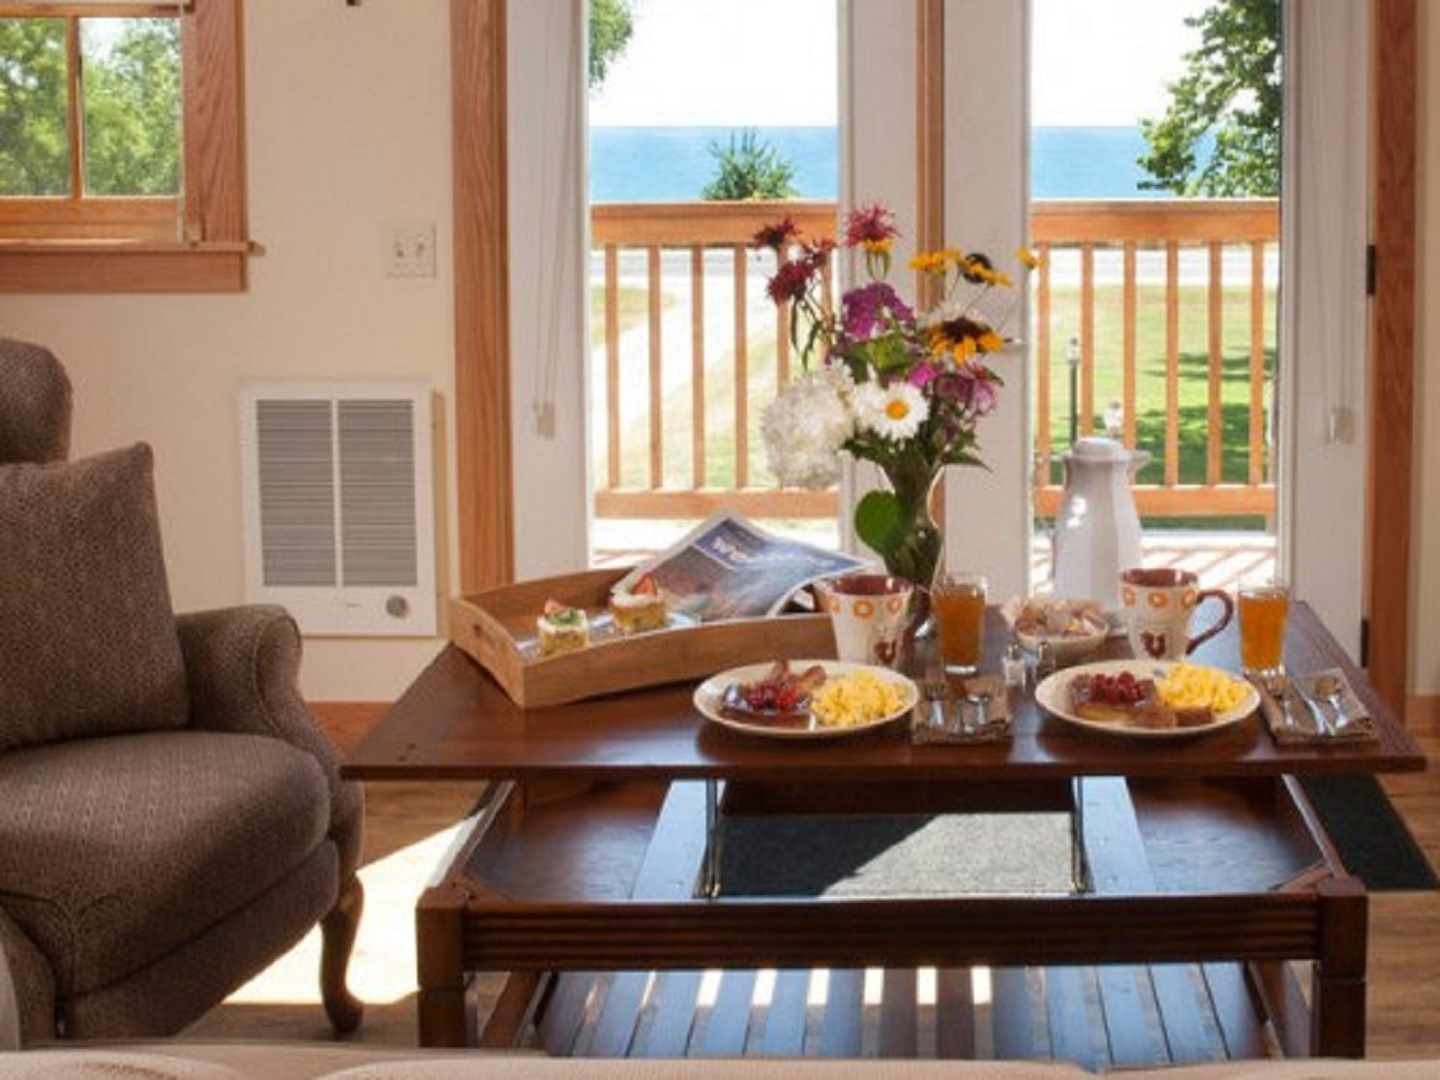 A dining room table in front of a window at Lake Orchard Farm Retreat.